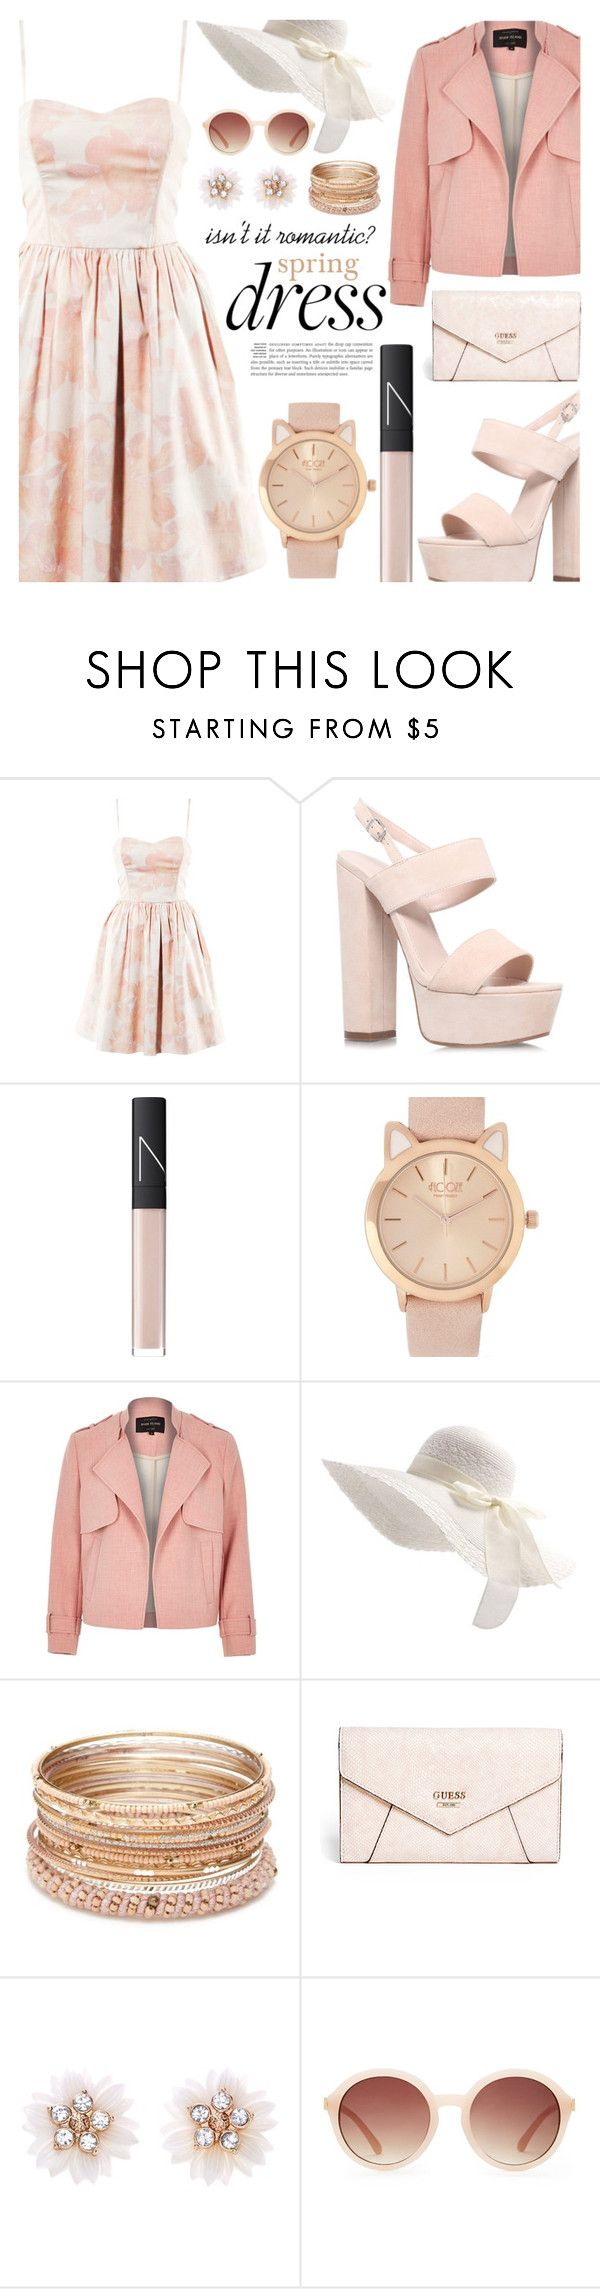 """::spring dresses:: the flirty bustier a-line::"" by sinesnsingularities ❤ liked on Polyvore featuring H&M, Carvela Kurt Geiger, NARS Cosmetics, River Island, Red Camel, GUESS, New Look, Forever 21, girly and contestentry"